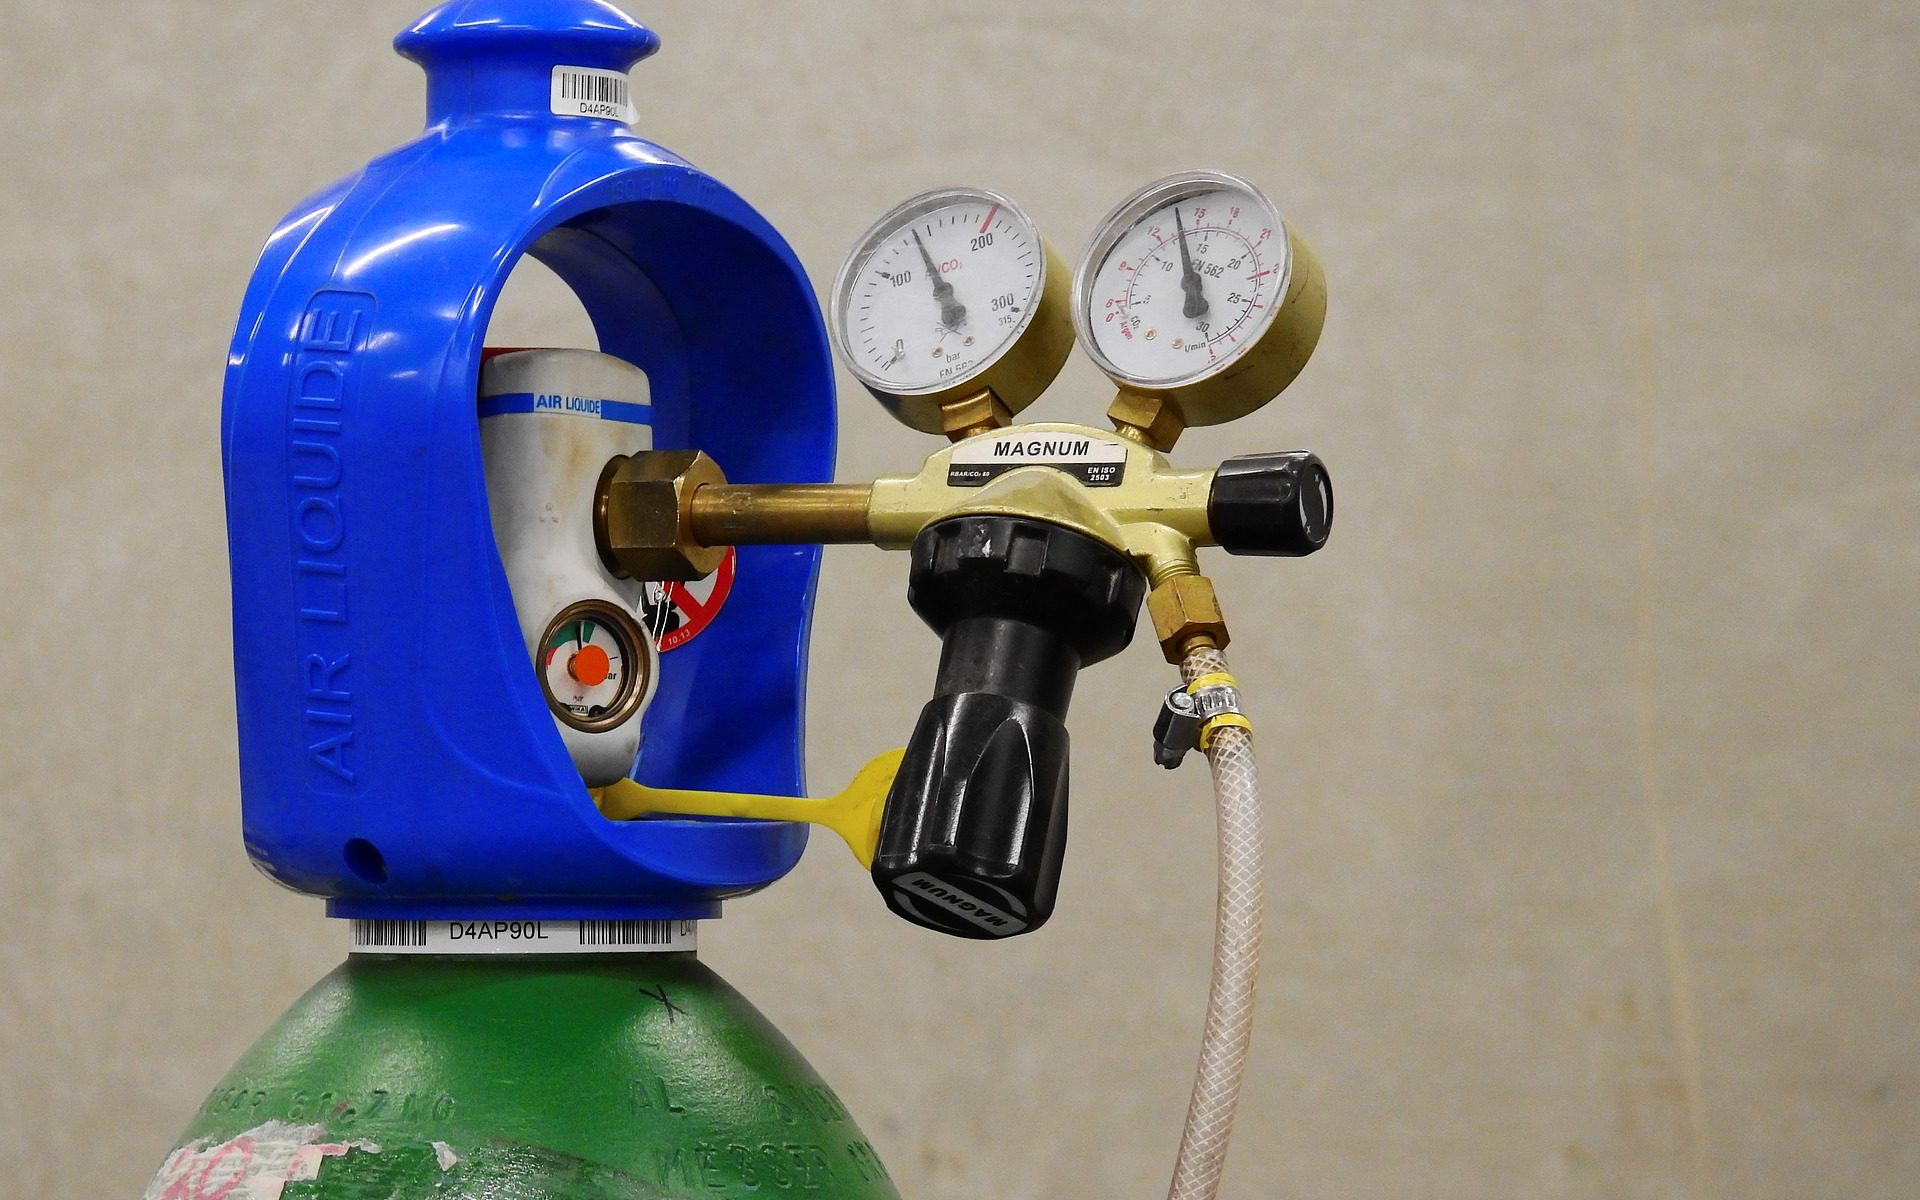 How to change a gas bottle yourself